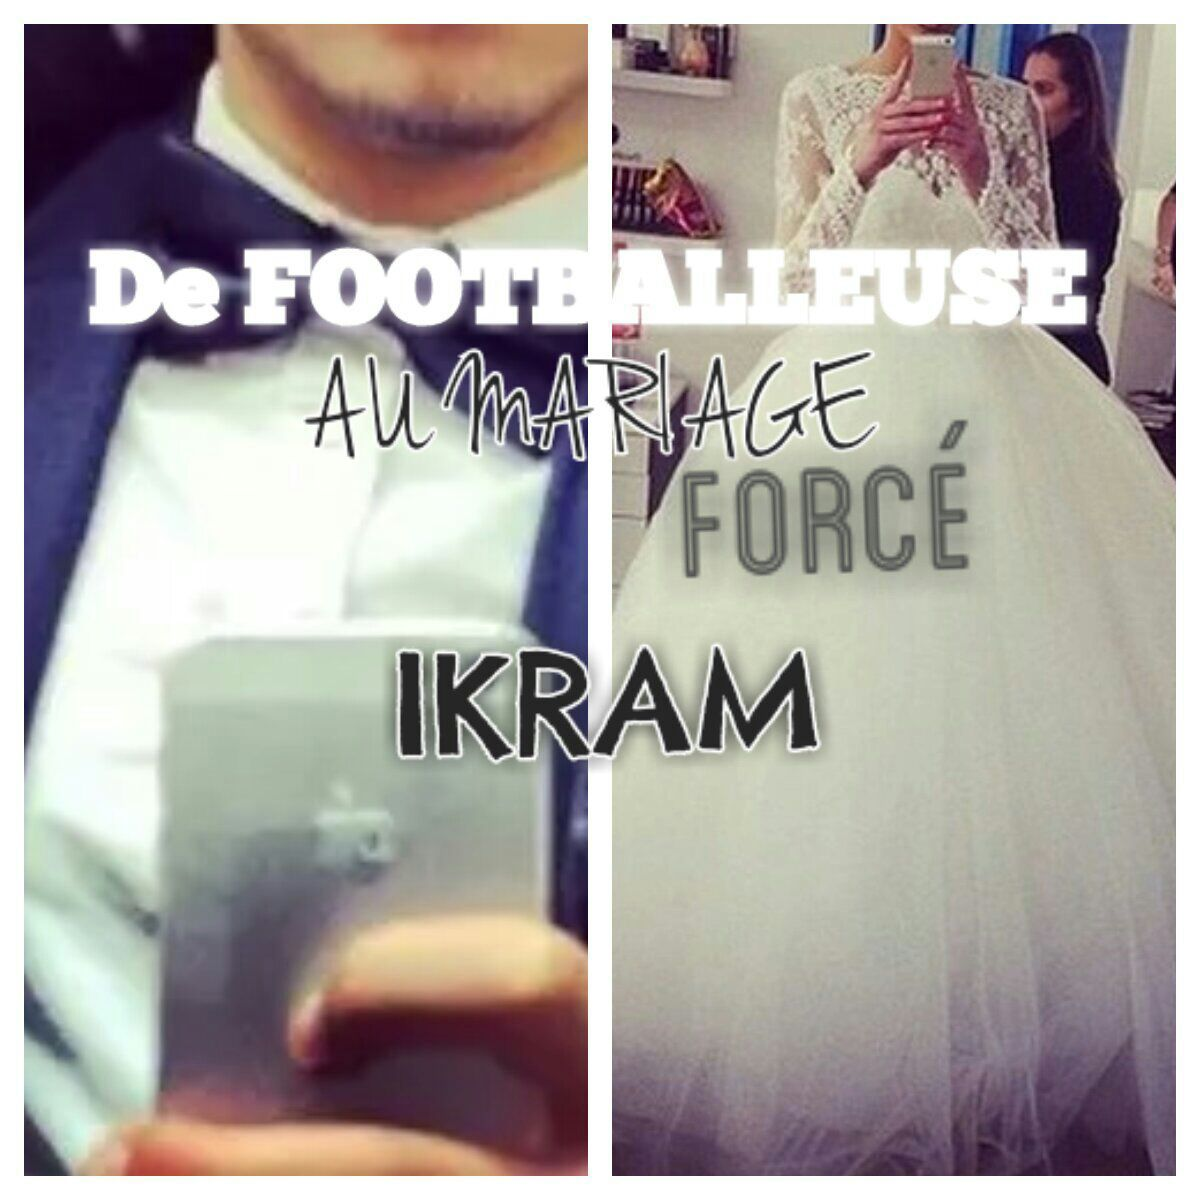 amour chronique foot footballeuse force ikram impossible life love lui mariage maroc mektoub soccer team tess quipe - Mariage Forc Chronique